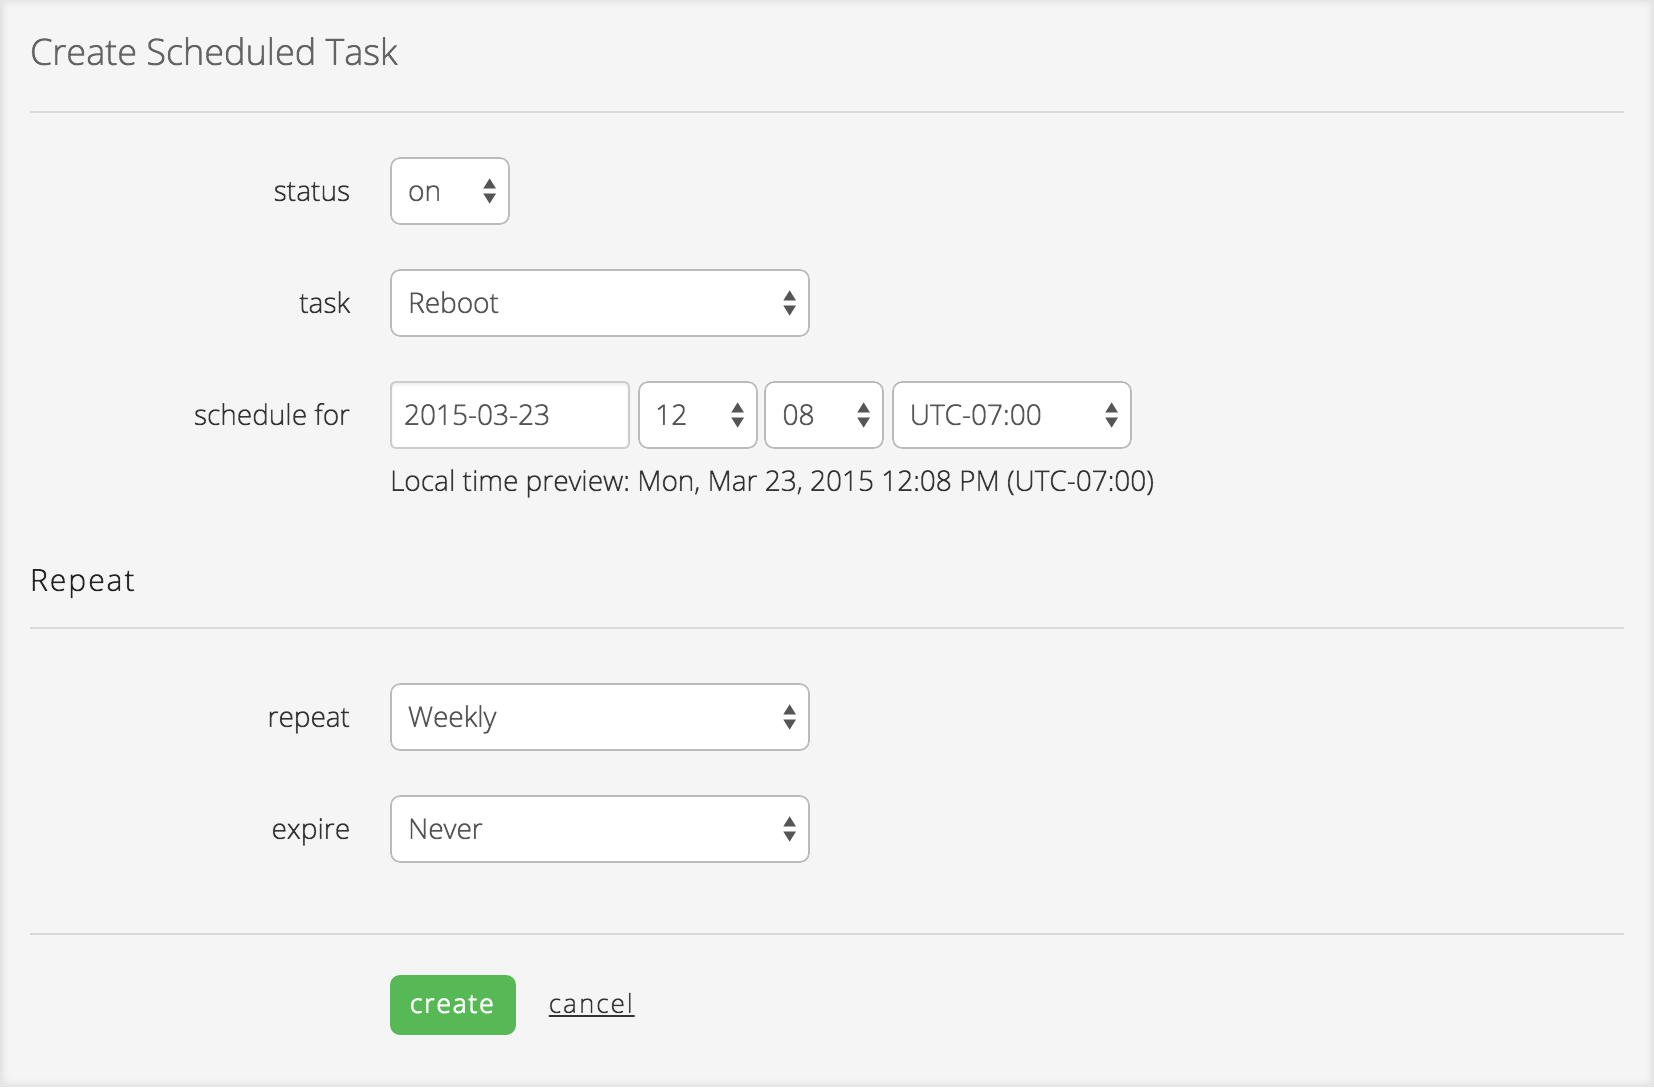 Create scheduled task form